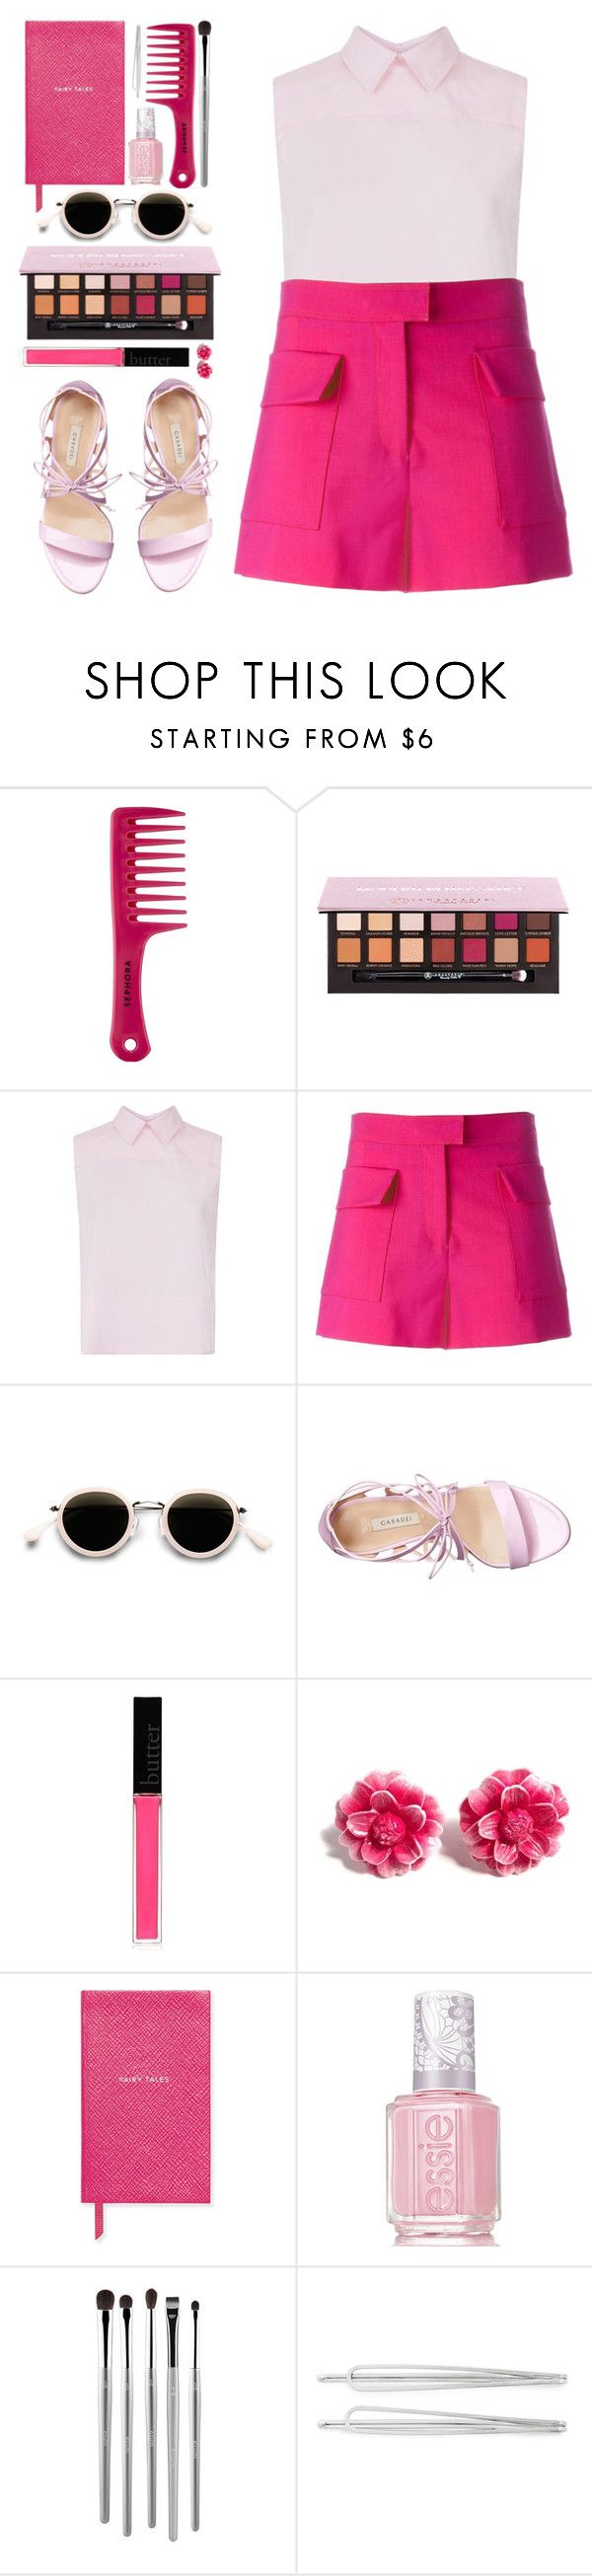 """""""#954 Rose"""" by blueberrylexie ❤ liked on Polyvore featuring Sephora Collection, Anastasia Beverly Hills, Victoria, Victoria Beckham, MSGM, Acne Studios, Casadei, Butter London, Tarina Tarantino, Smythson and Essie"""